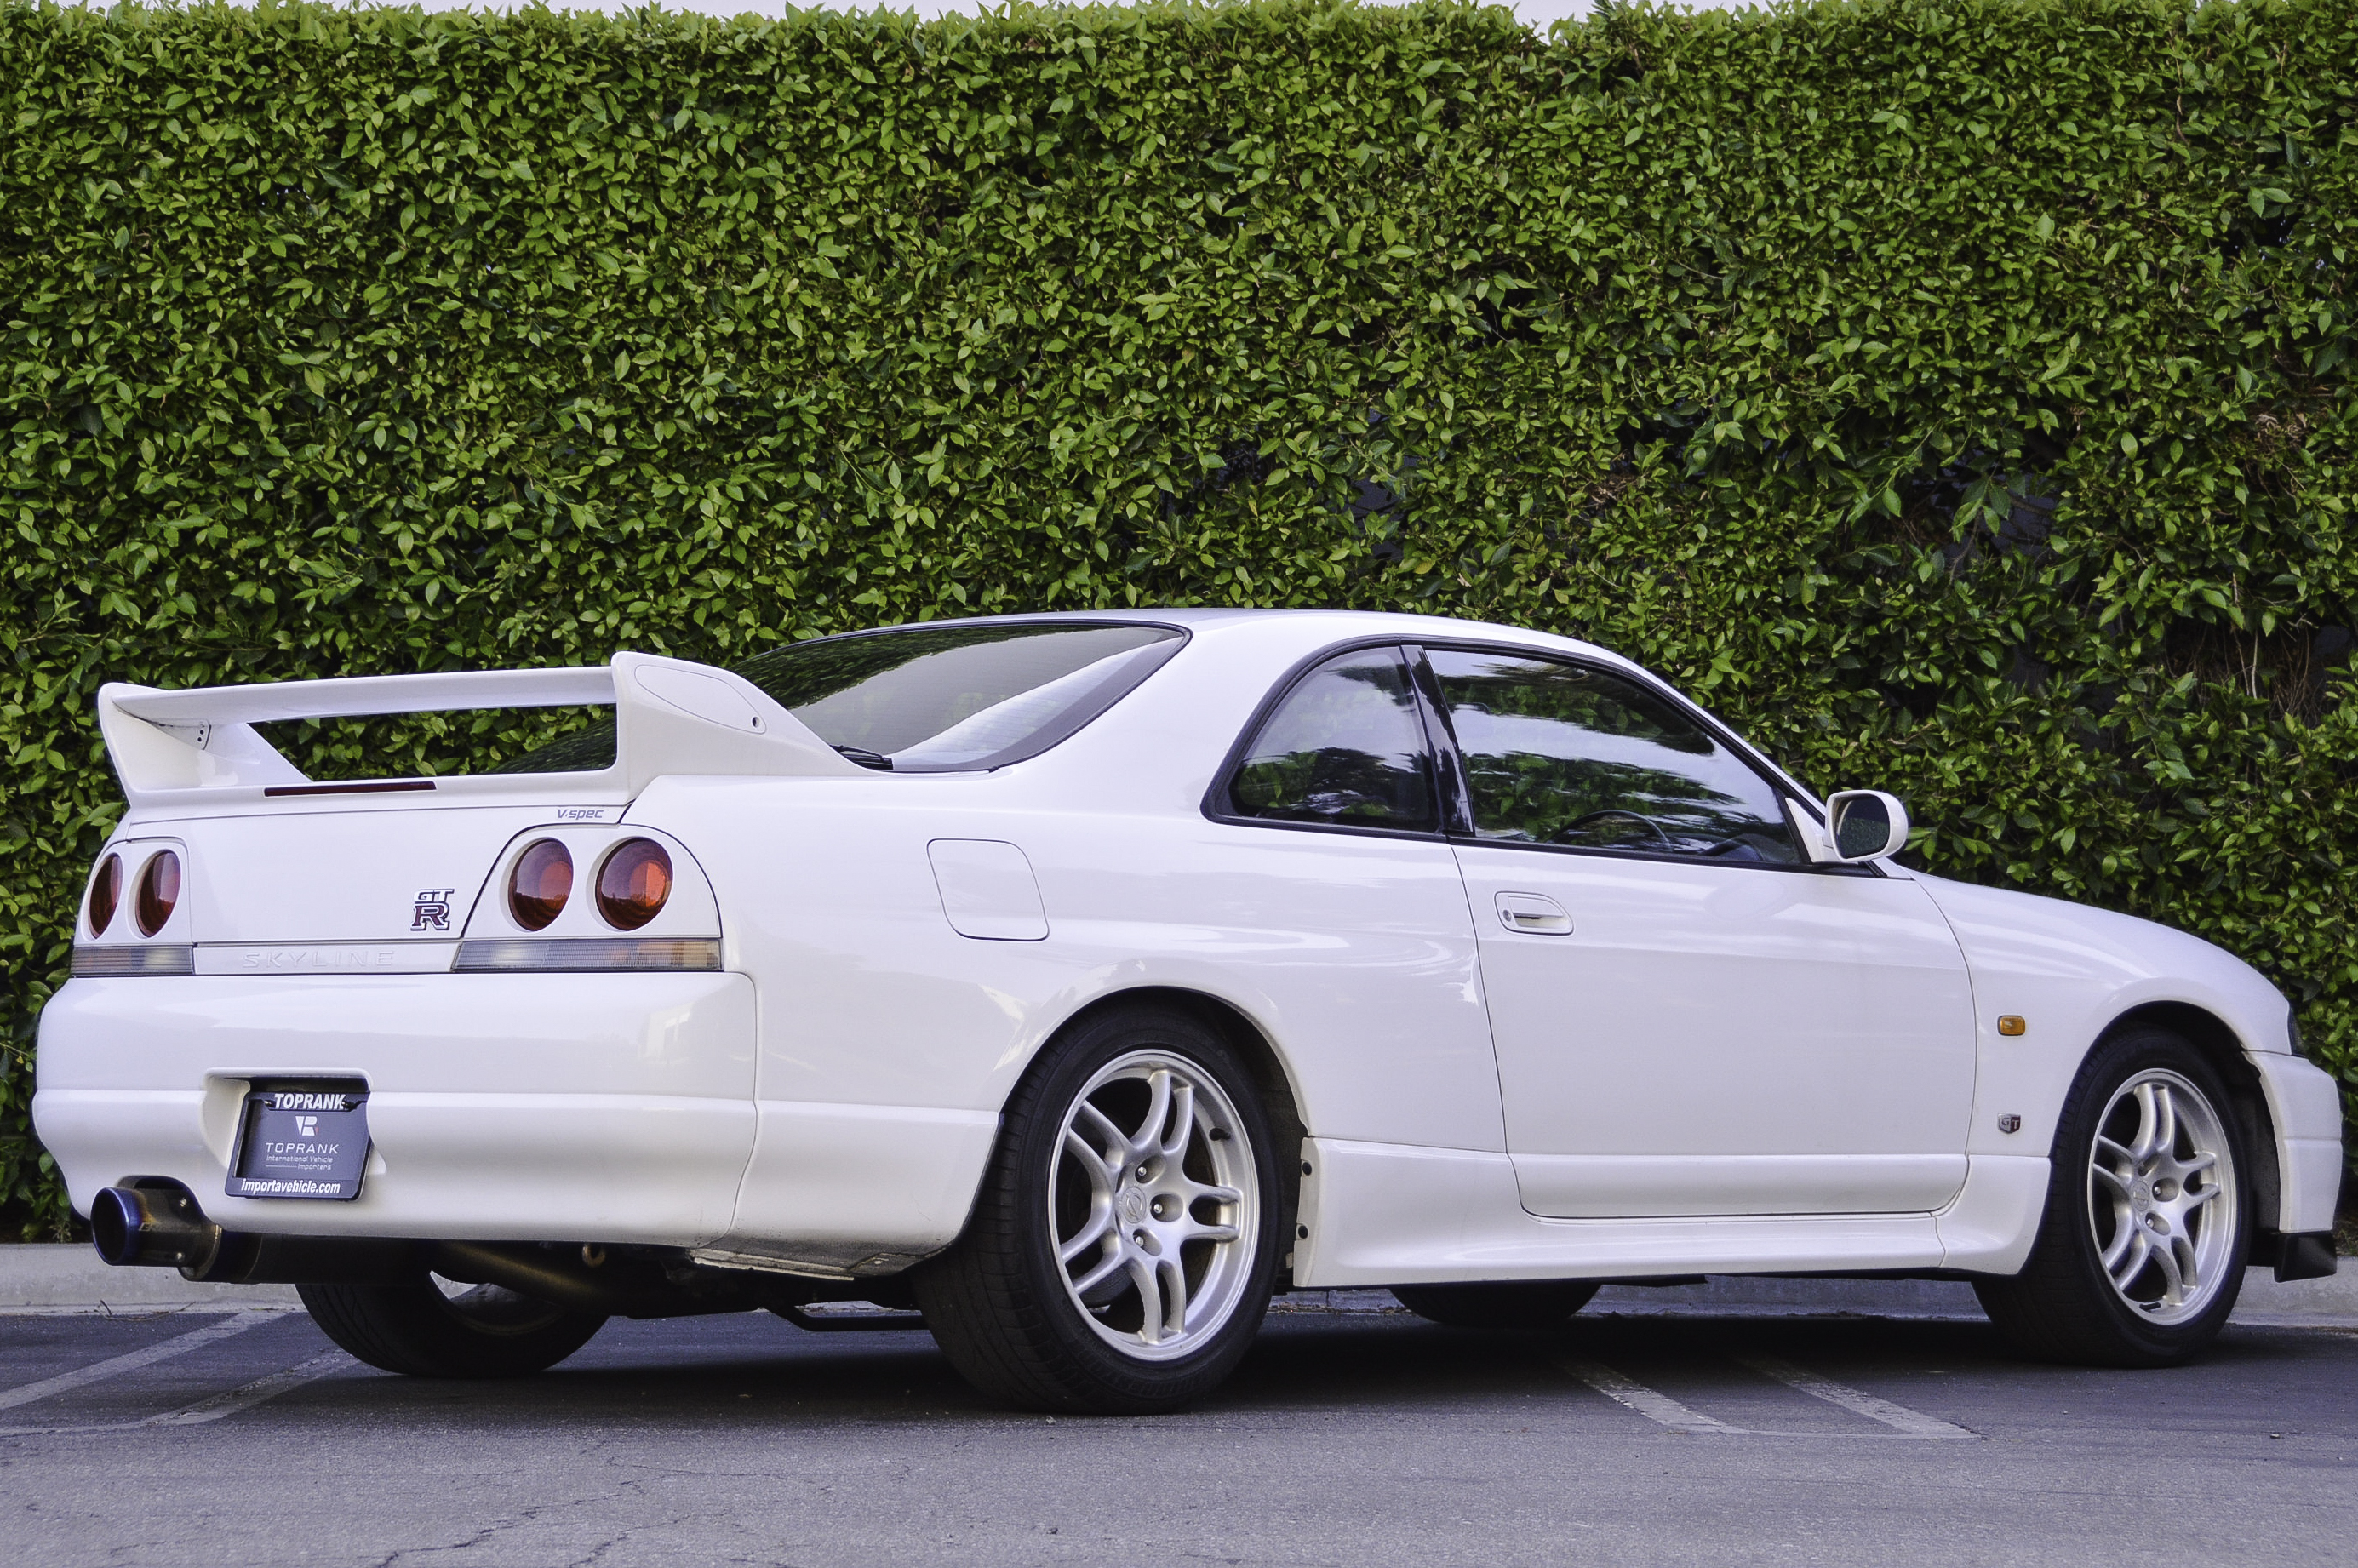 For Sale R33 Nissan Skyline GT-R at JDM Importer Toprank